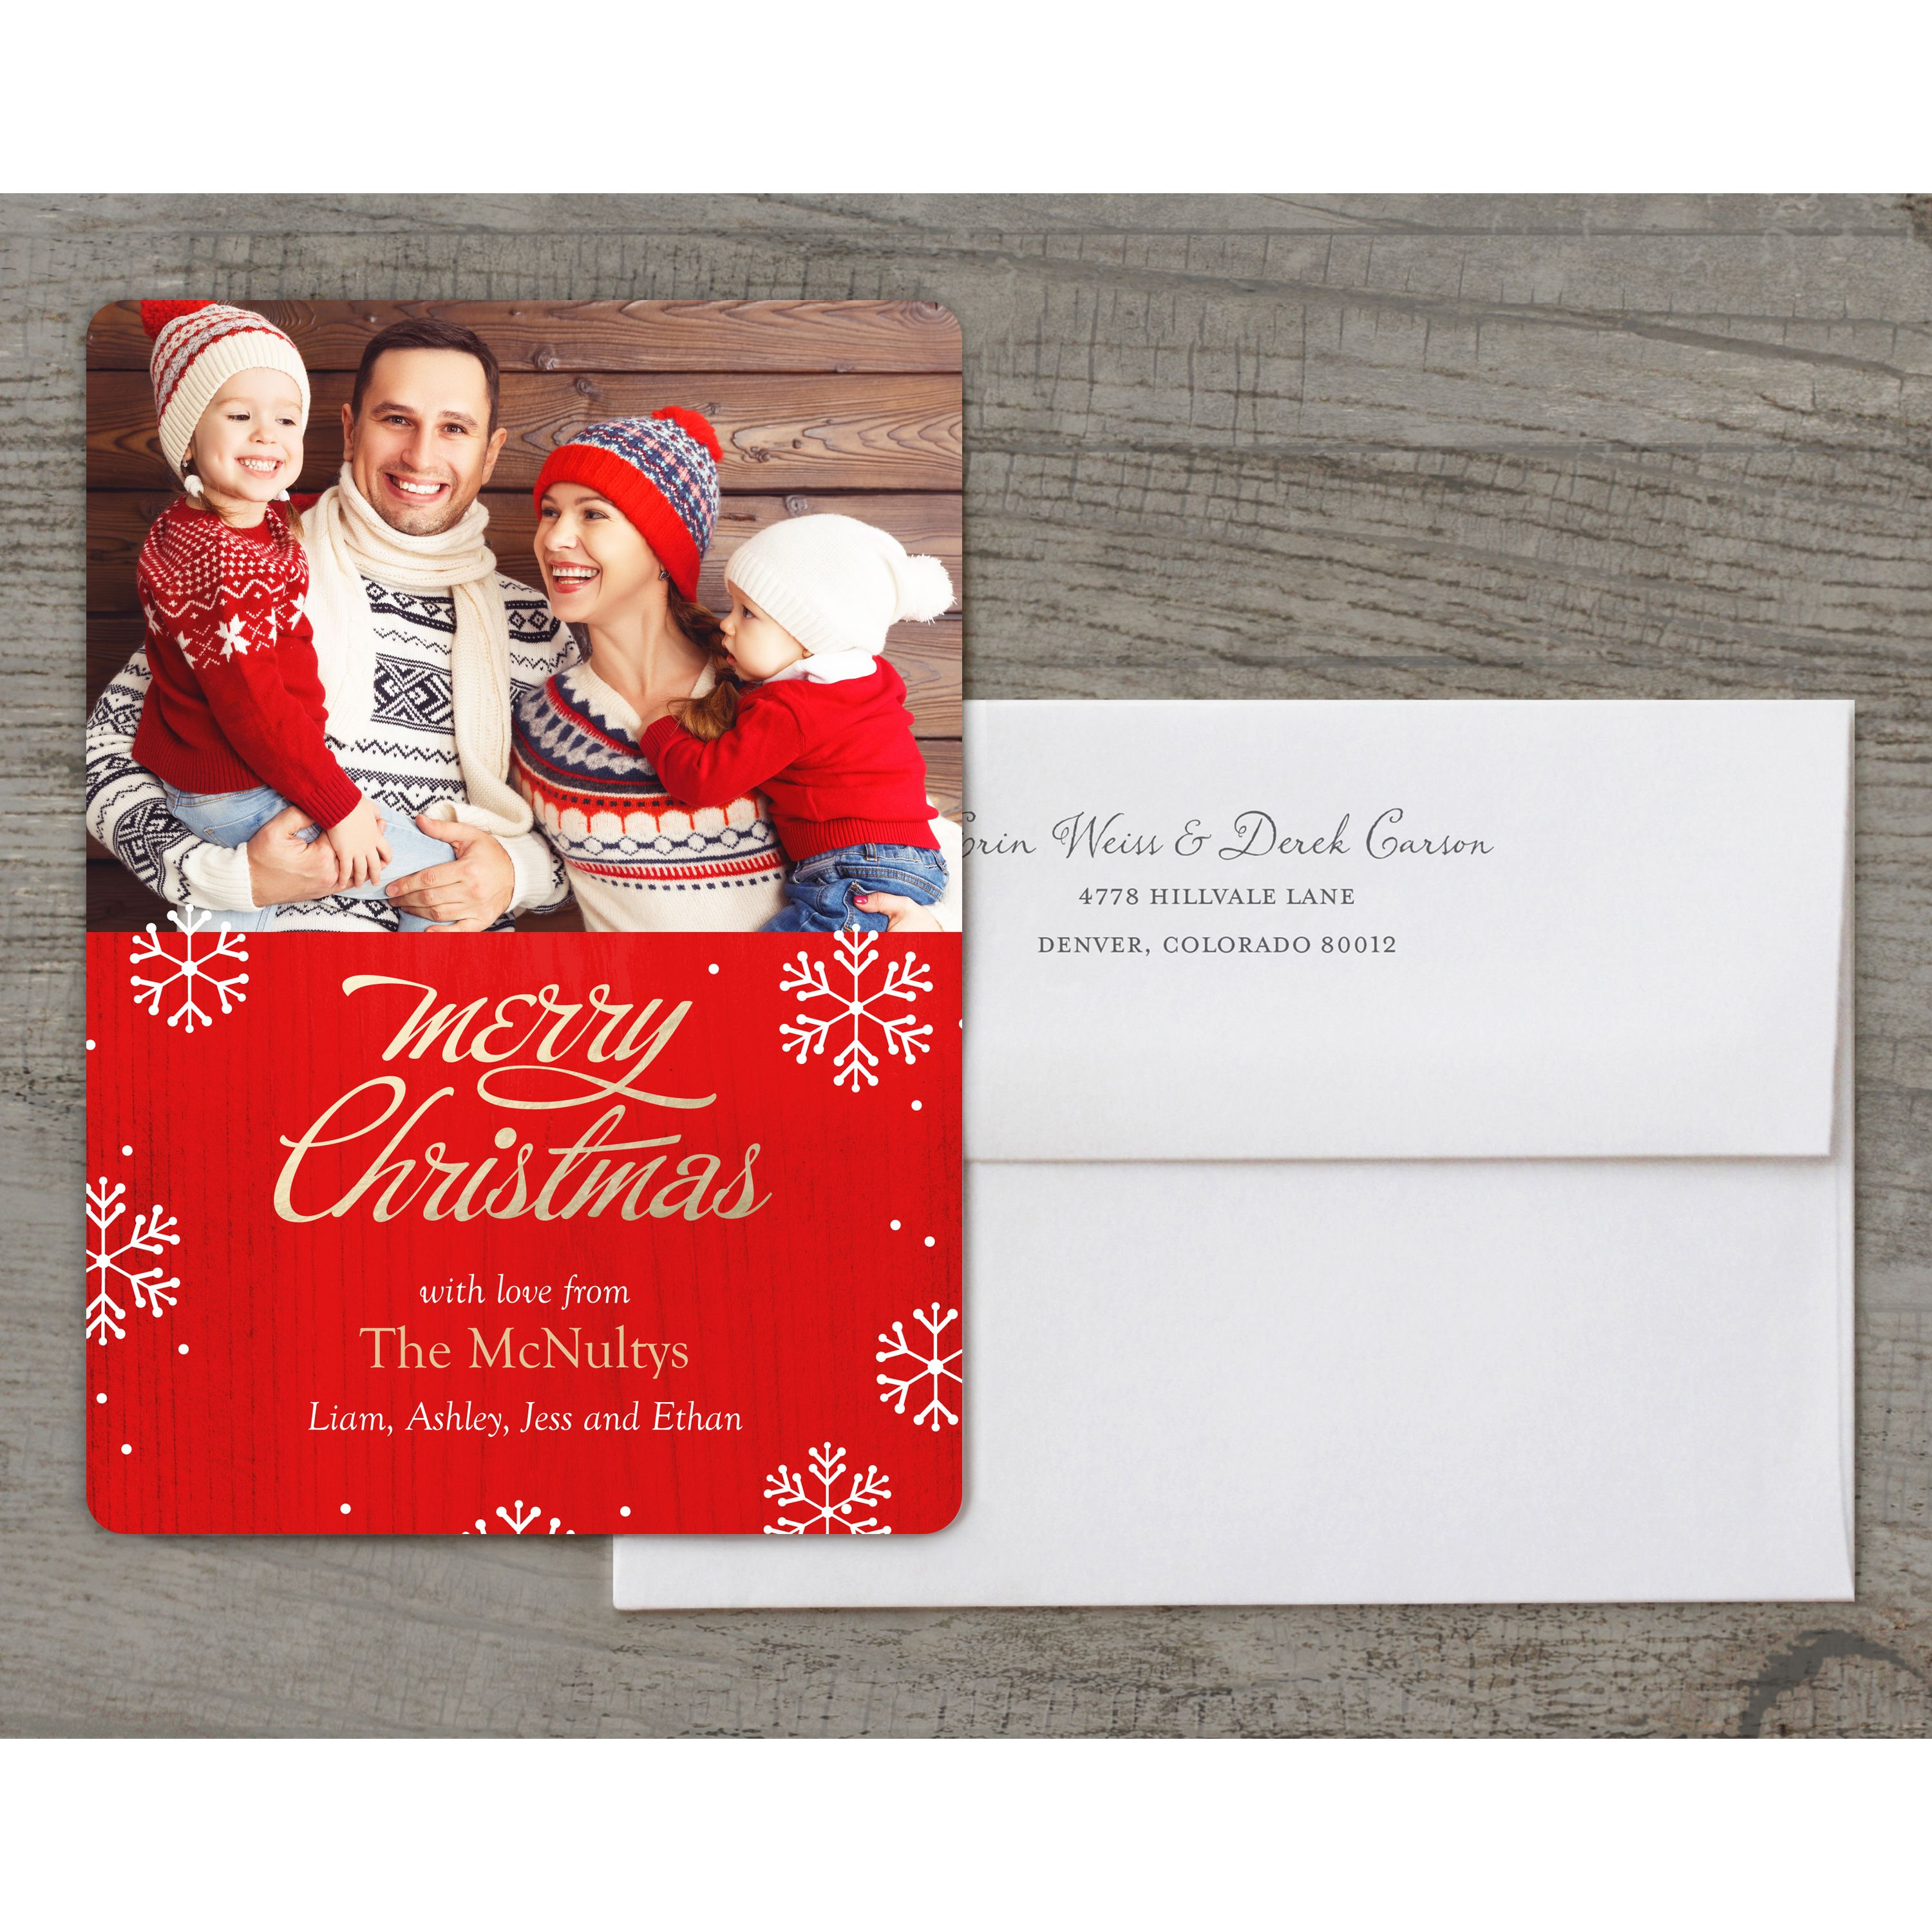 Brilliant Season - Deluxe 5x7 Personalized Holiday Christmas Card